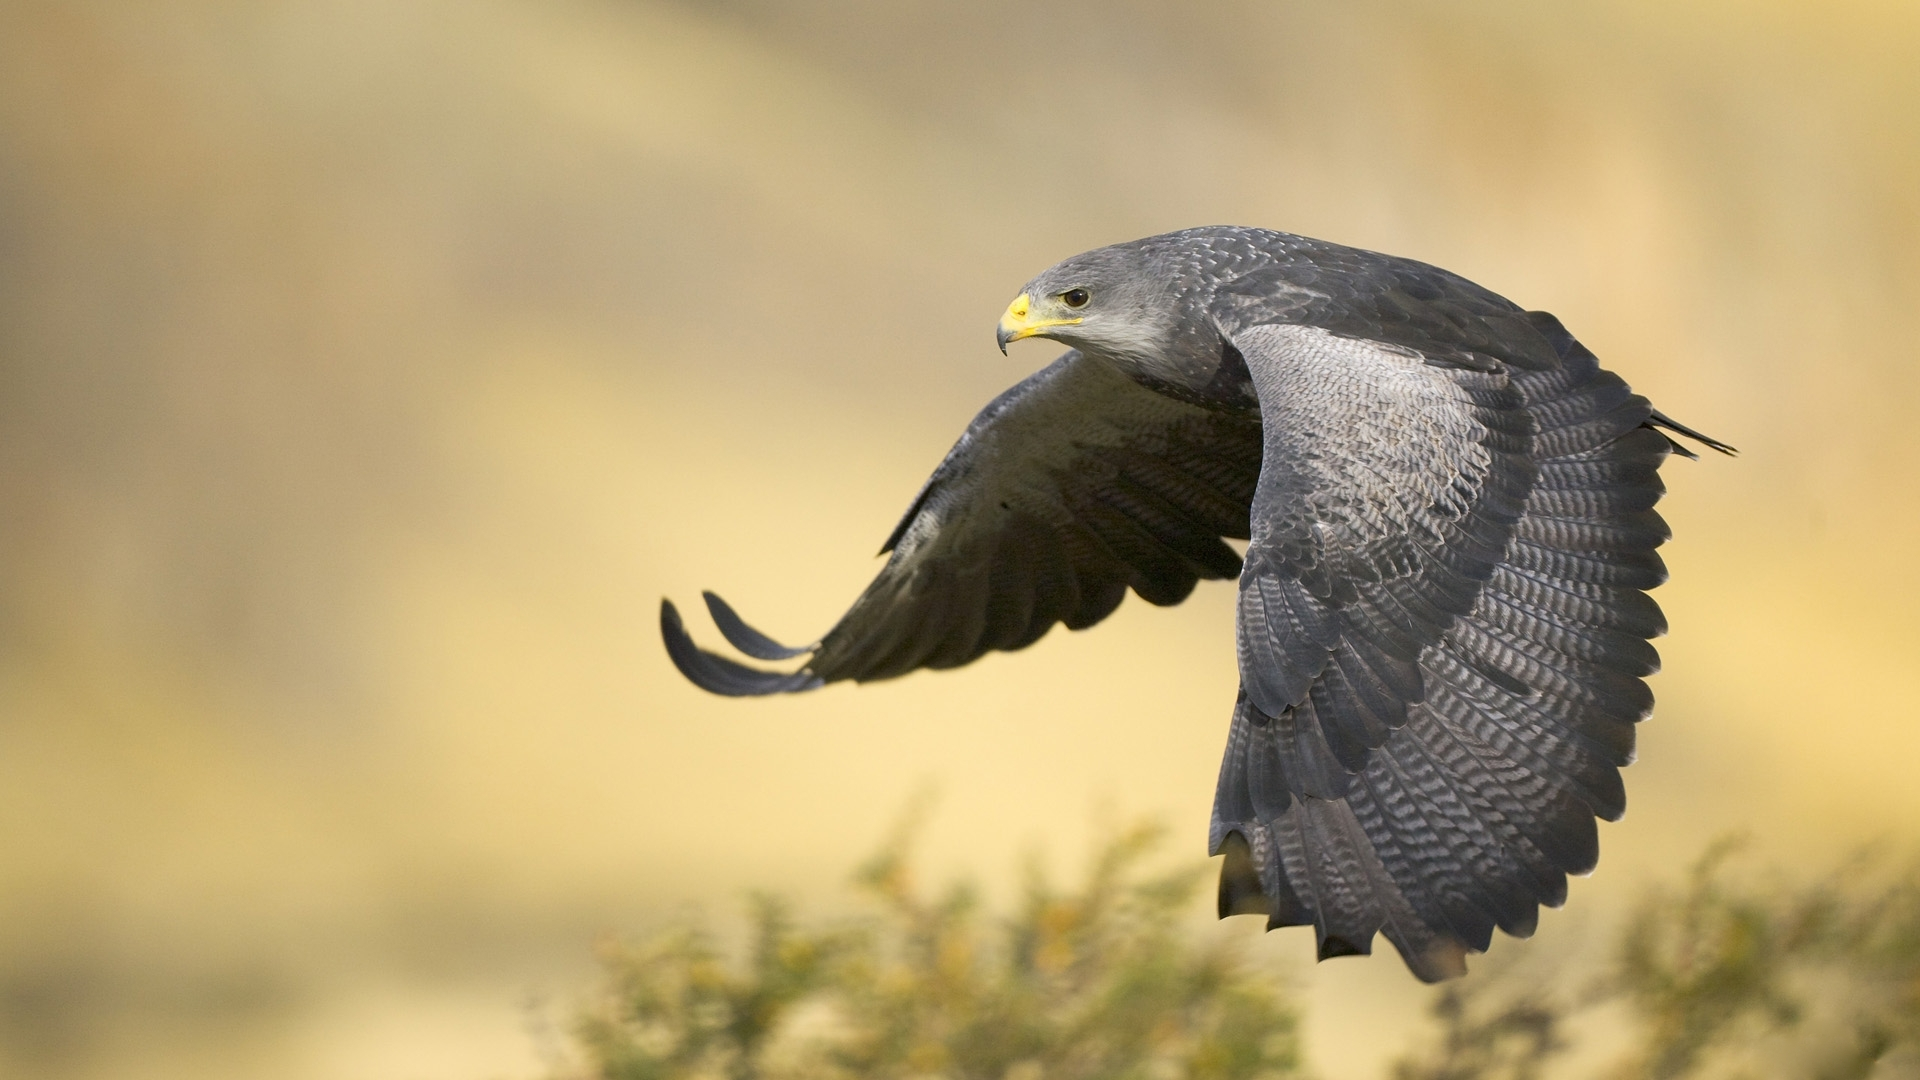 Hawk hd wallpaper background image 1920x1080 id - Hawk iphone wallpaper ...